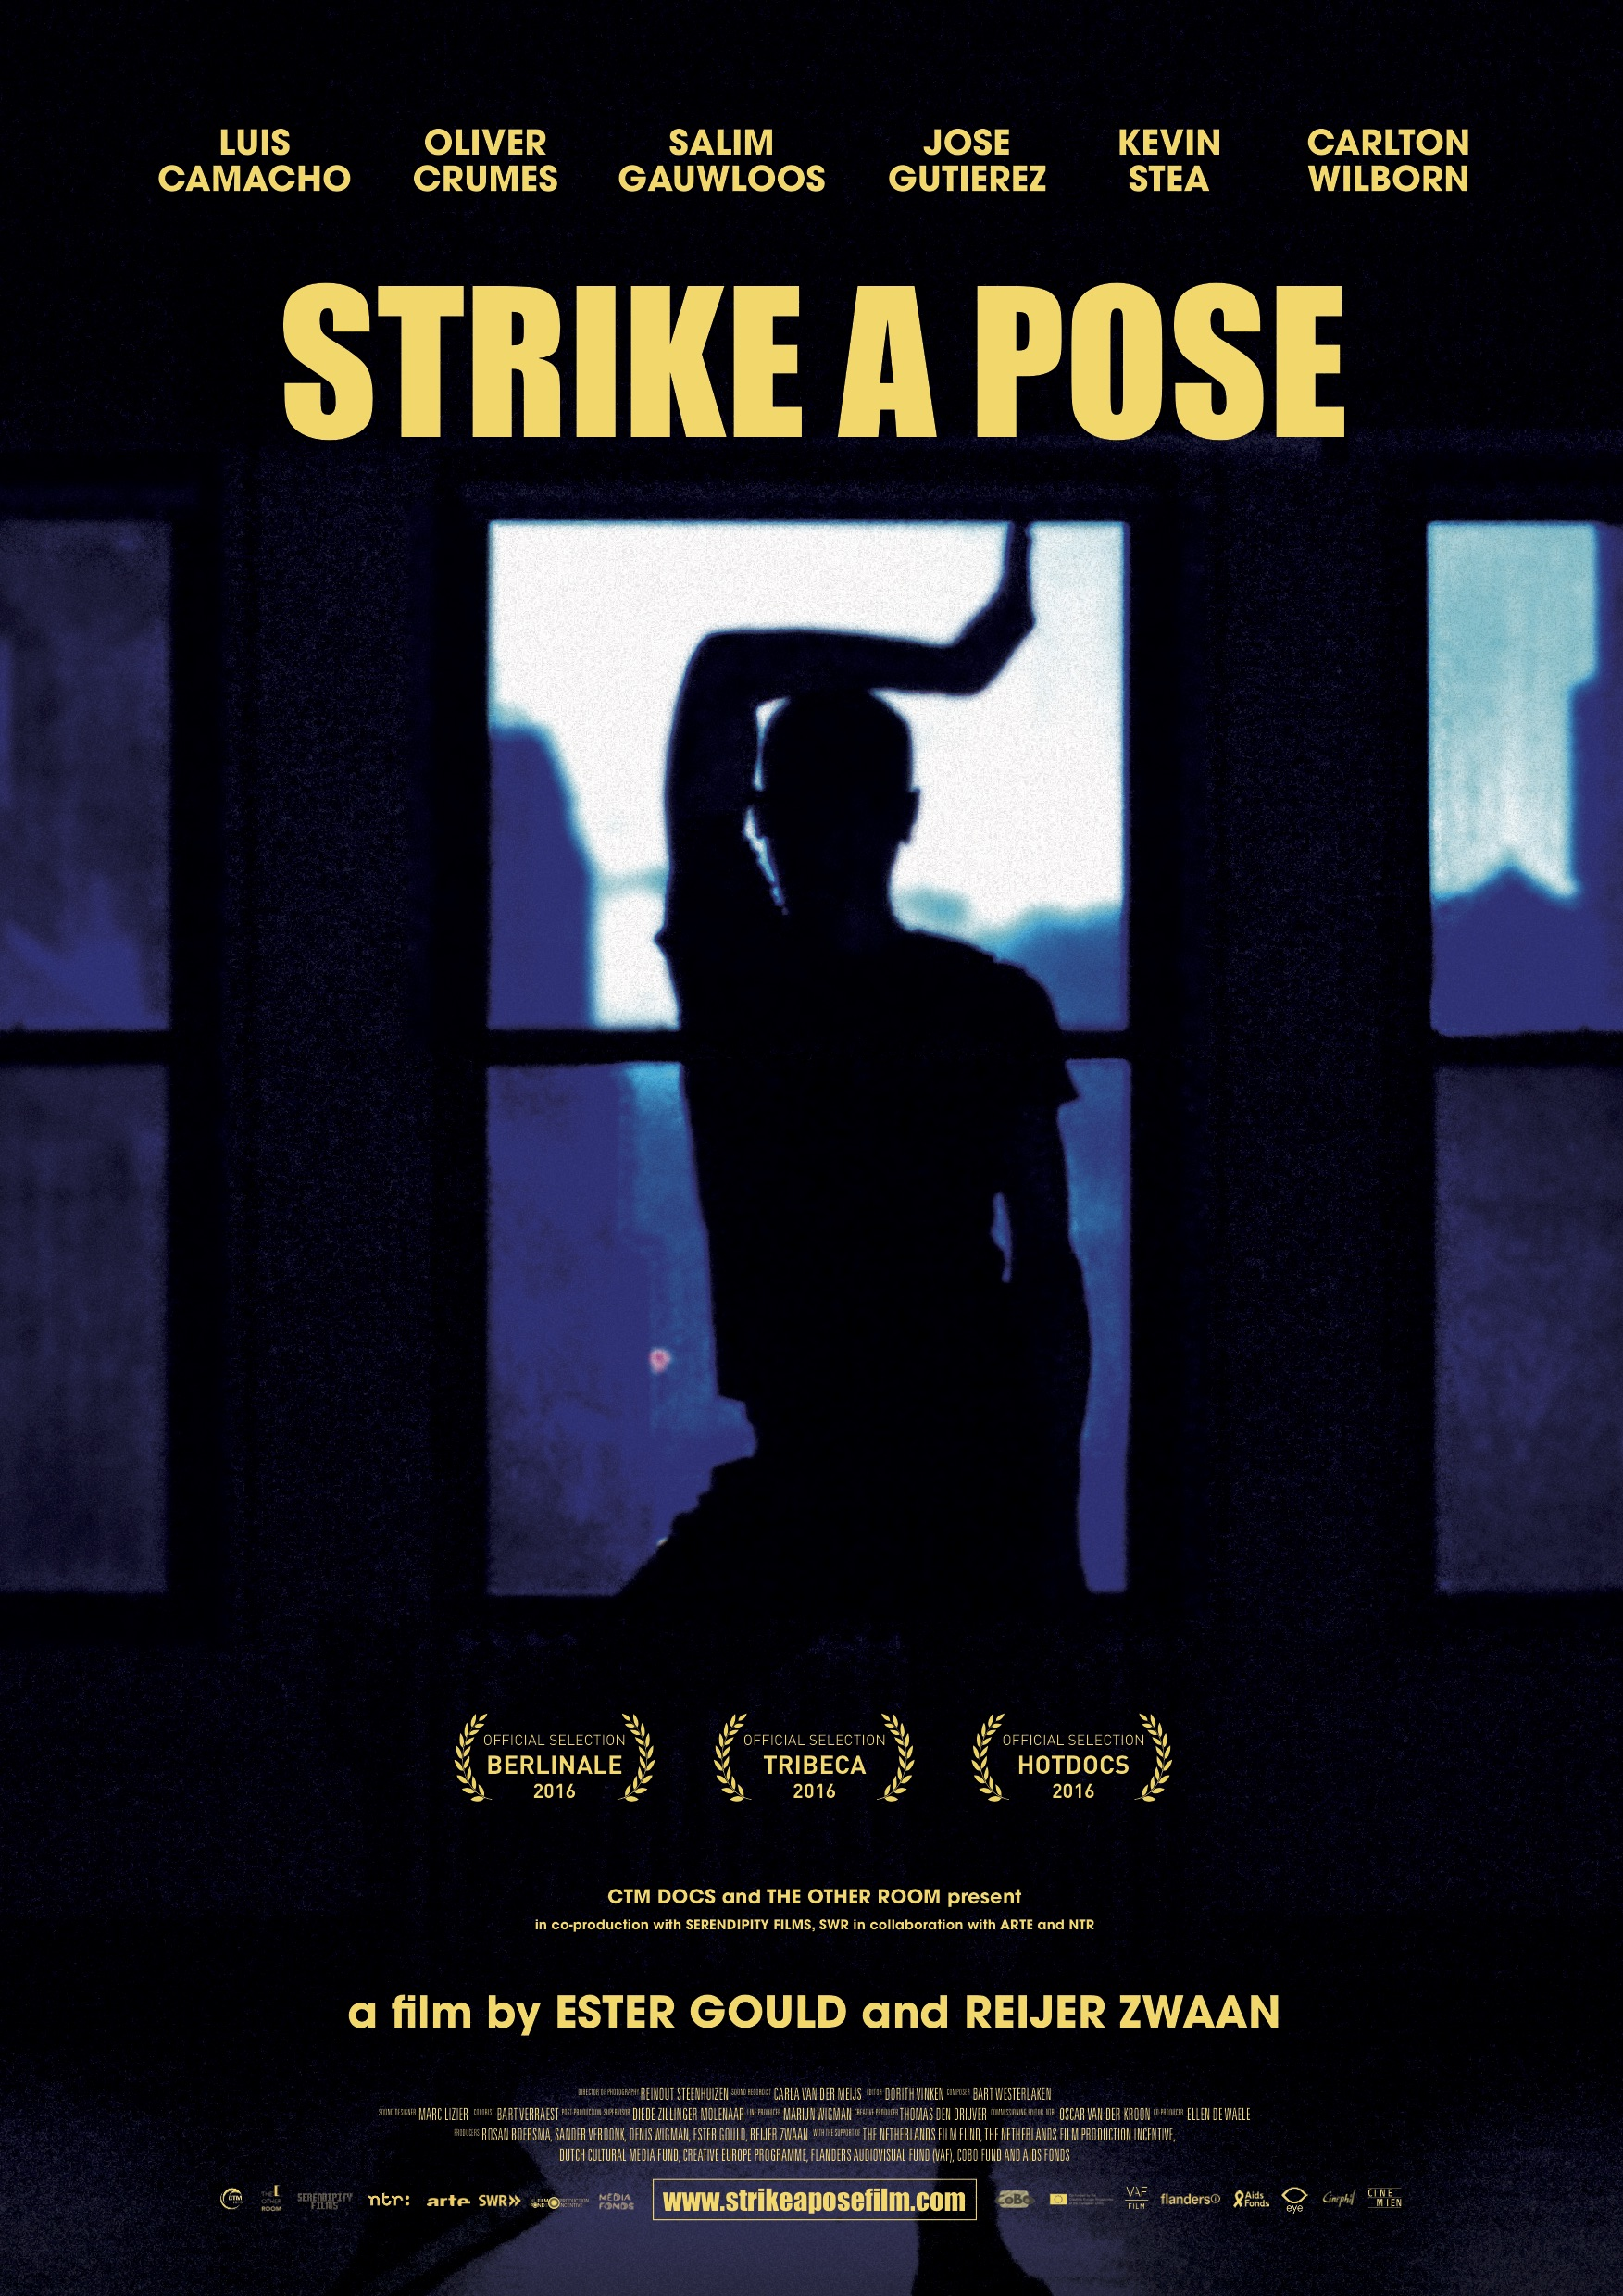 - Original Title: Strike a PoseDirectors: Ester Gould, Reijer ZwaanProducers: Rosan Boersma, Denis Wigman, Sander Verdonk, Ester Gould, Reijer ZwaanCoproducer: The Other Room, Serendipity Films, NTRMain Cast: Kevin Stea, Salim Gauwloos, Carlton Wilborn, Luis Camacho, José Gutierez, Oliver CrumesLanguage: EnglishDistributor: CinemienSales agent: Bond 360 (NA), Cinephil (ROW)Year of release: Berlinale 2016  www.strikeaposefilm.com